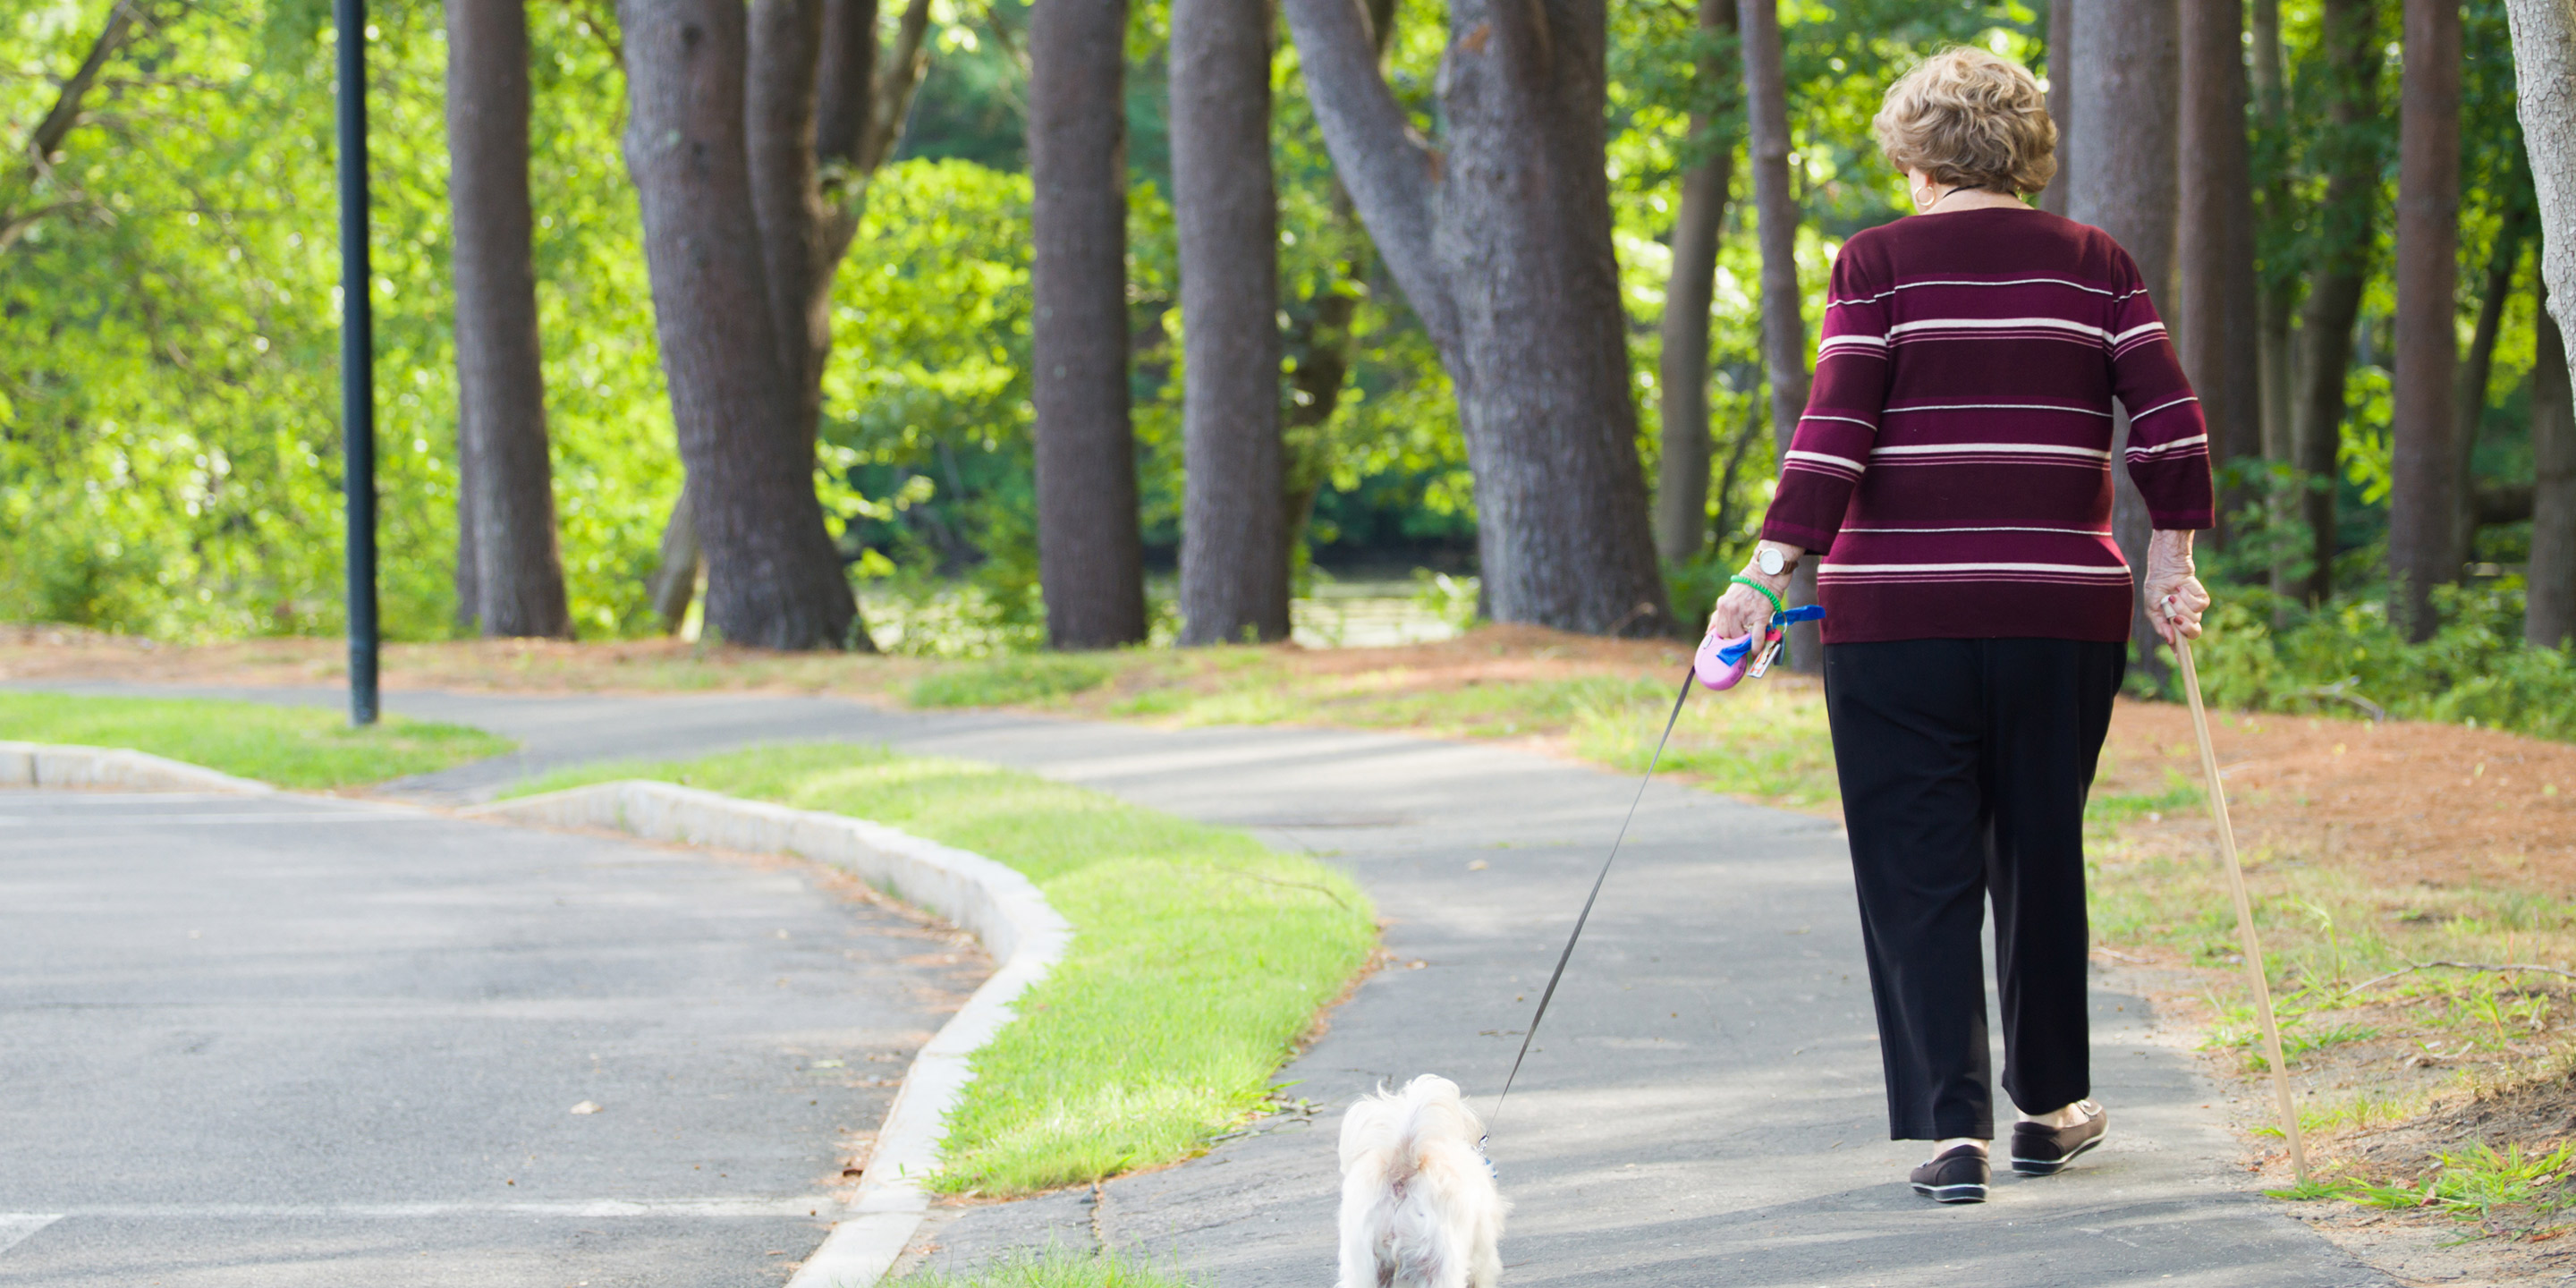 A woman walks down a path holding a dog leash in one hand and a walking stick in the other.